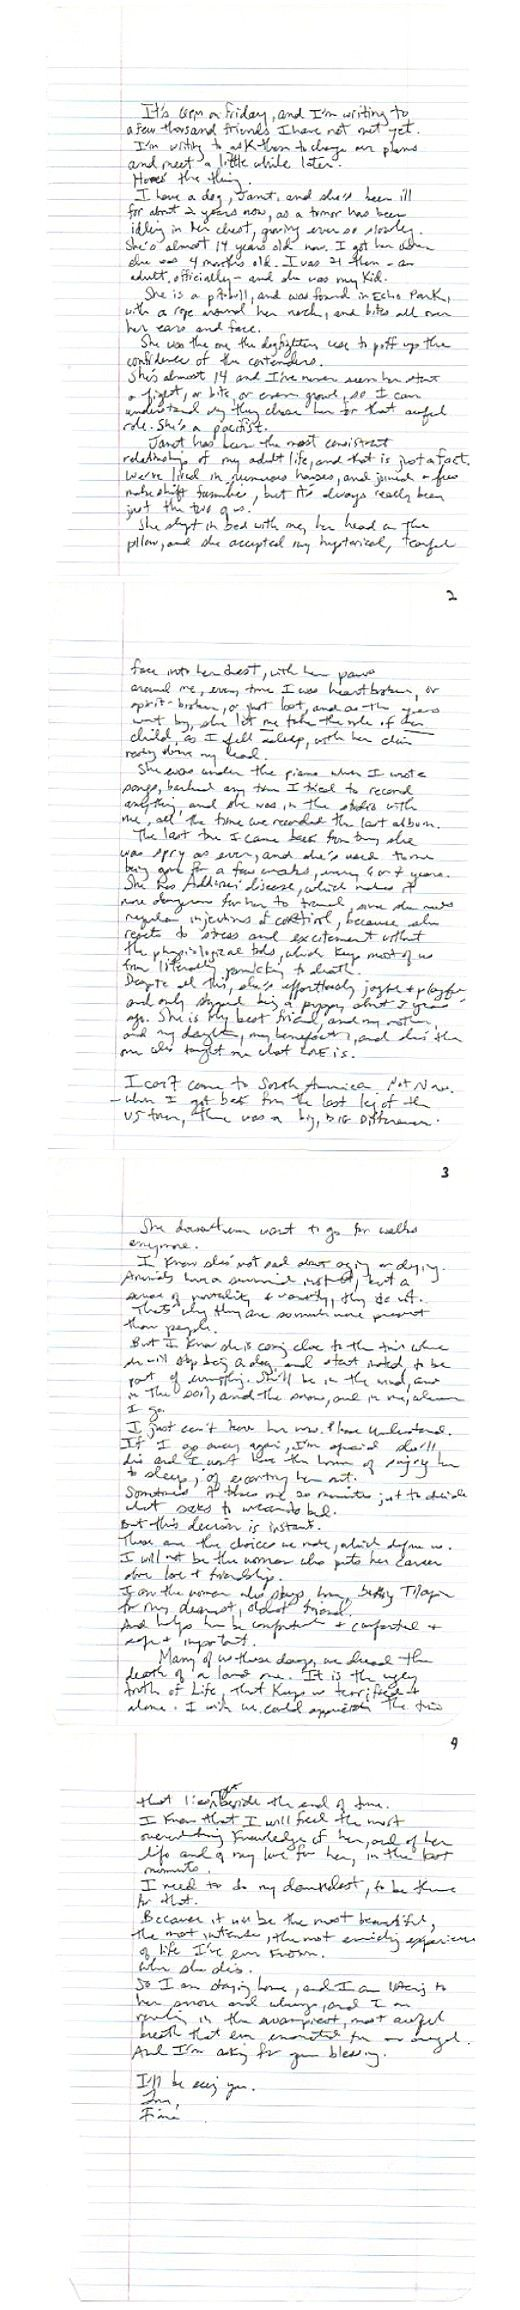 Fiona AppleS Stirring Handwritten Letter About Her Dying Dog